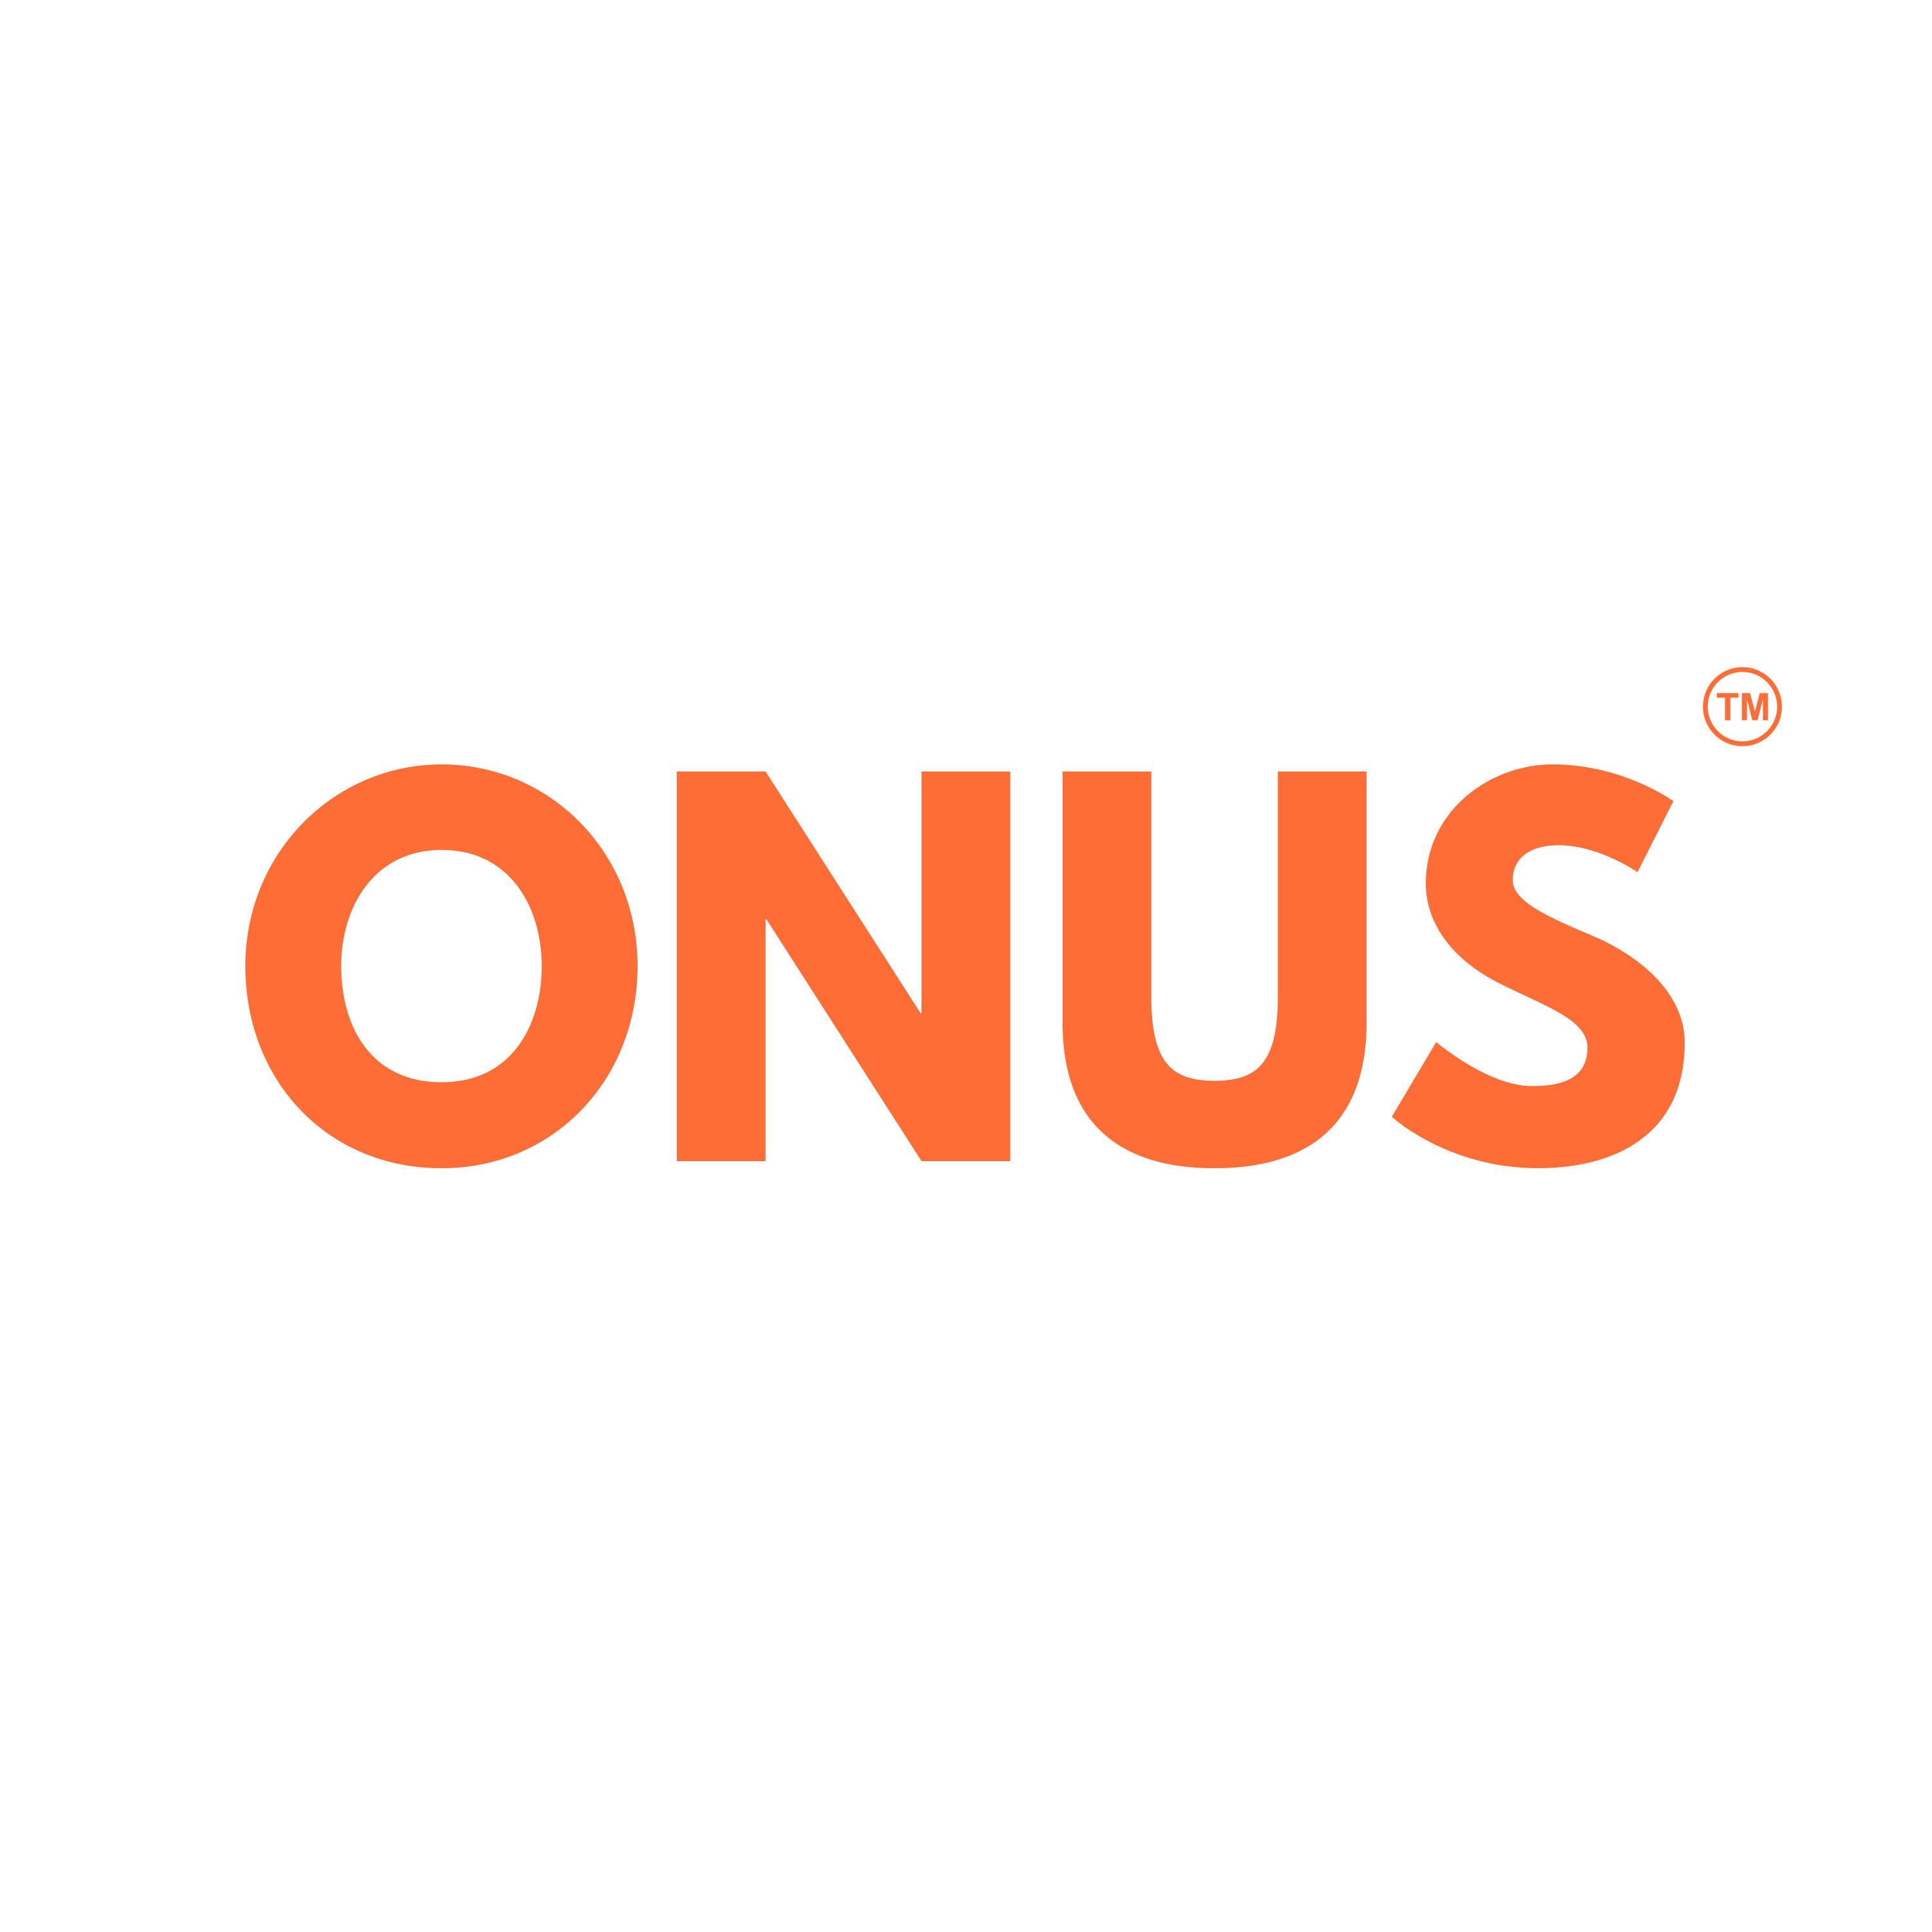 Onus social digital marketing agency